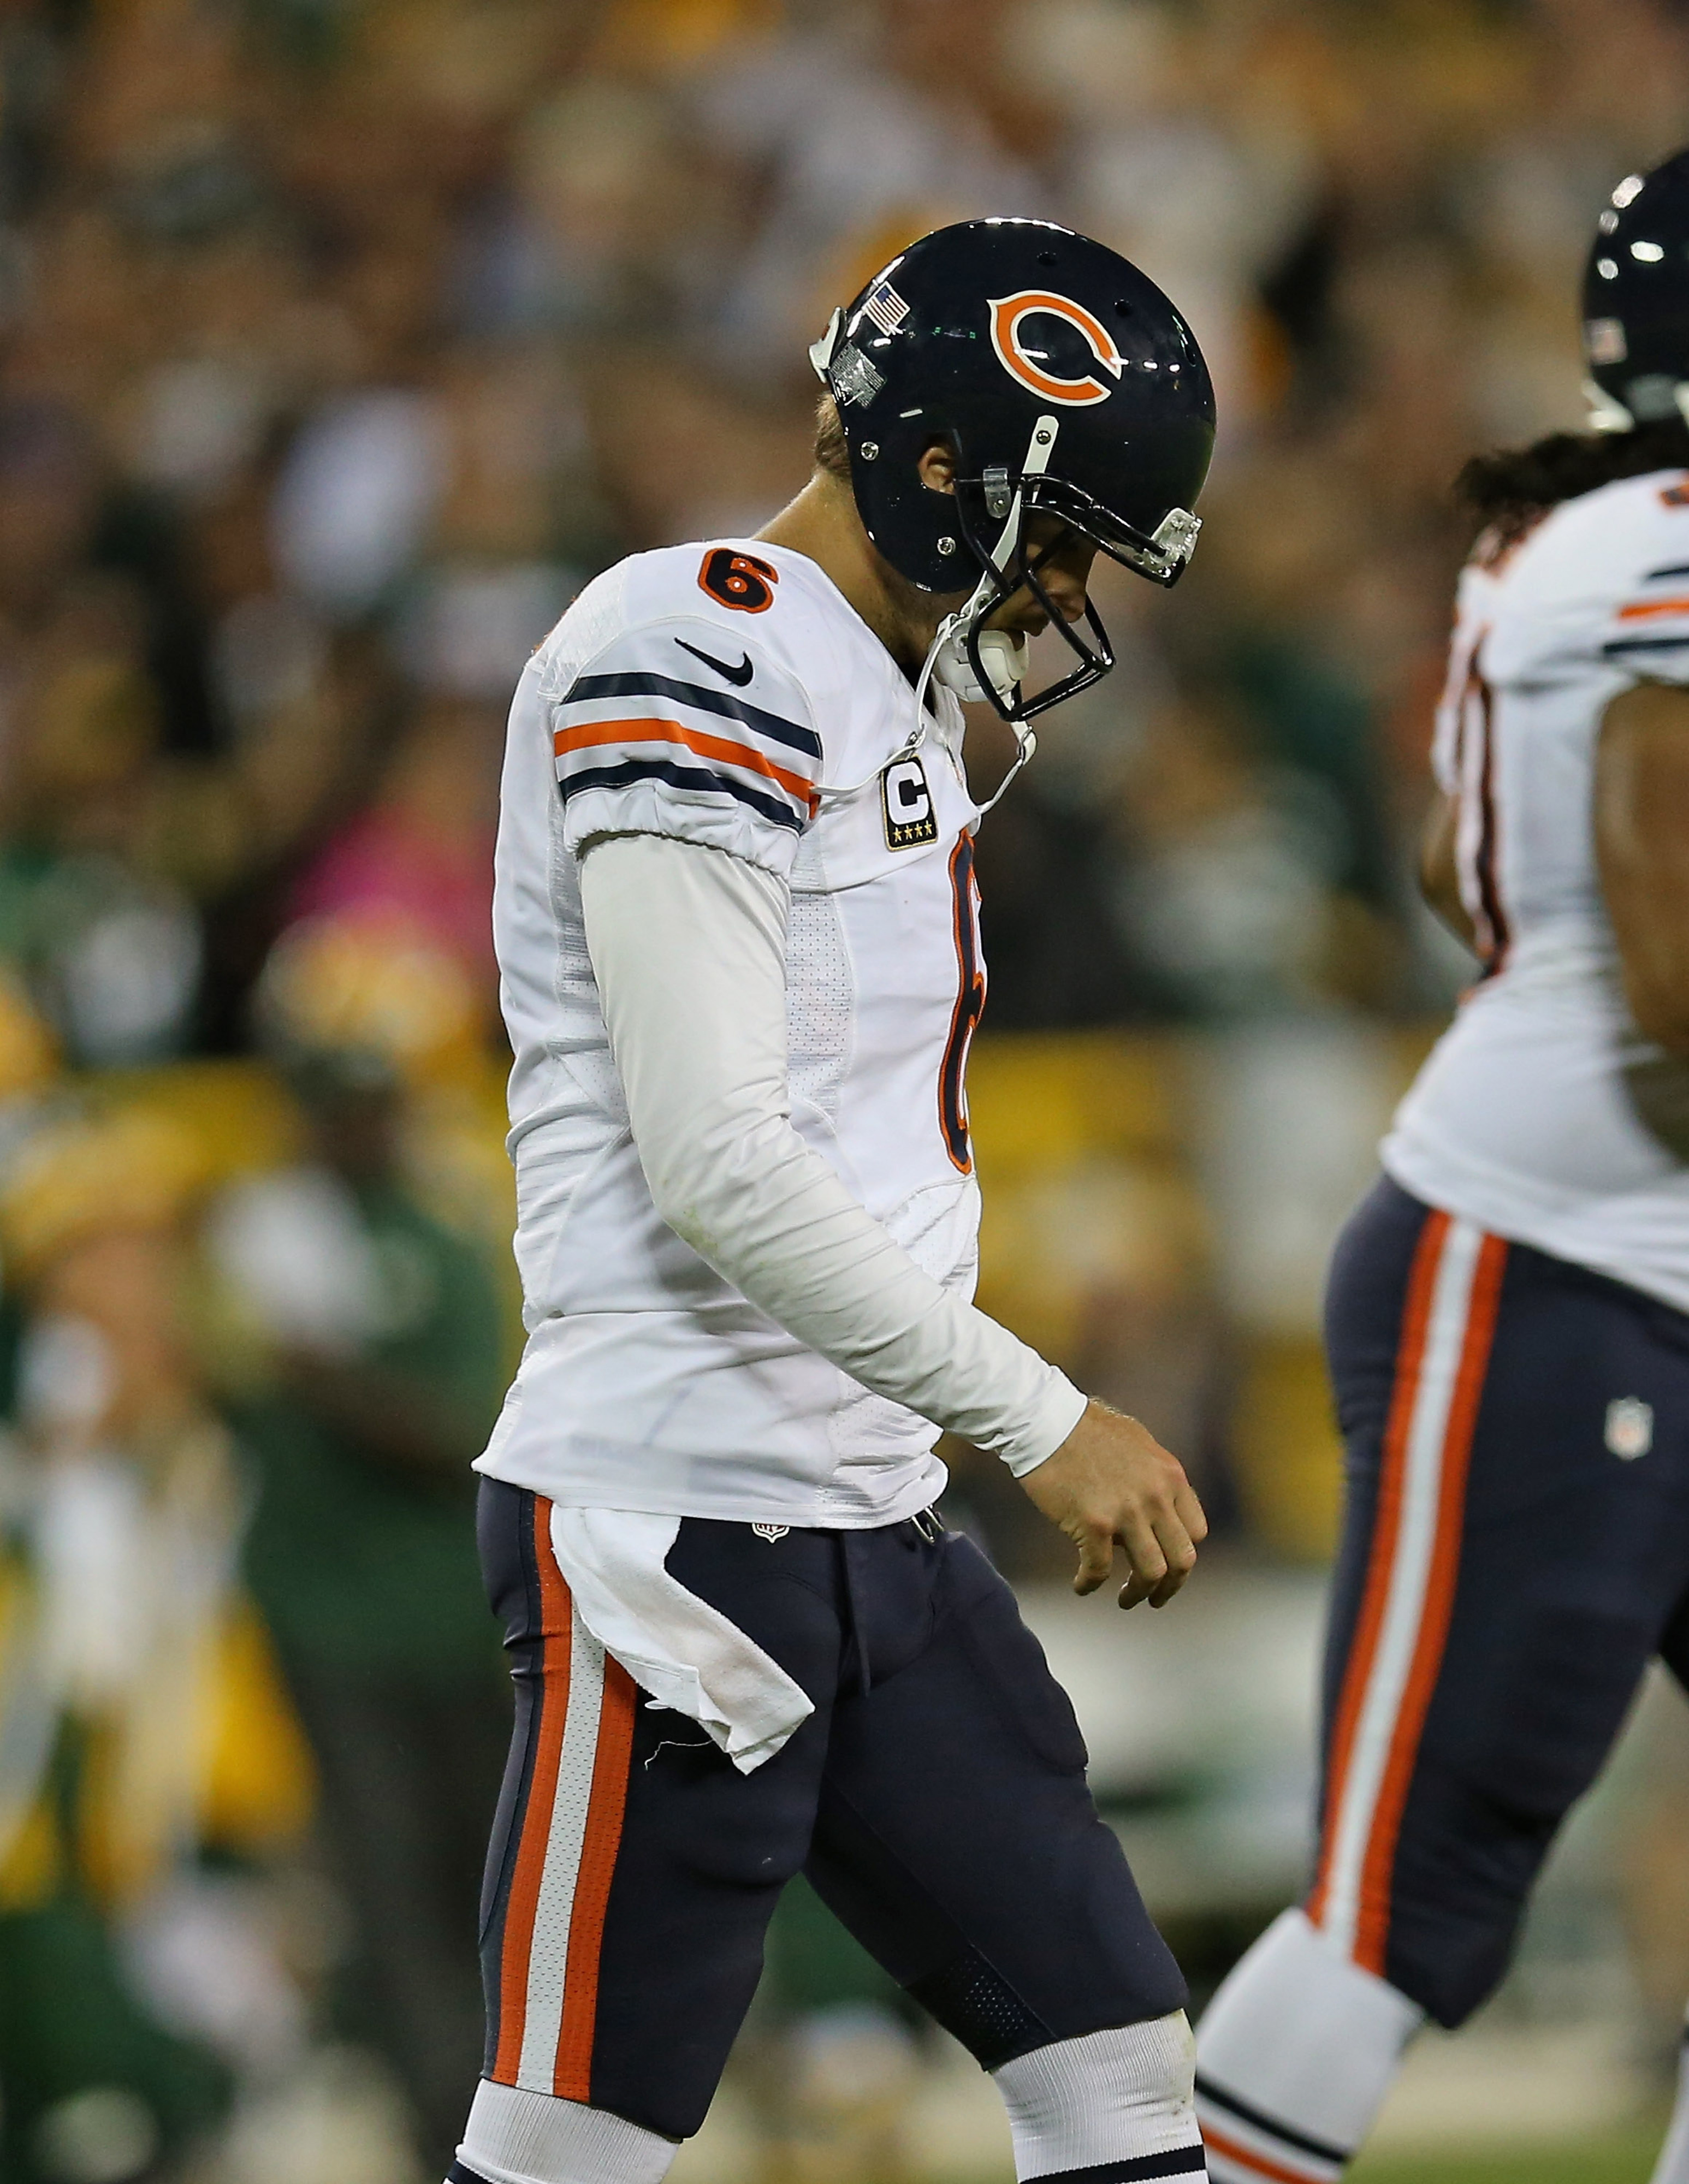 If you hum the Charlie Brown music, Jay Cutler really especially defeated.